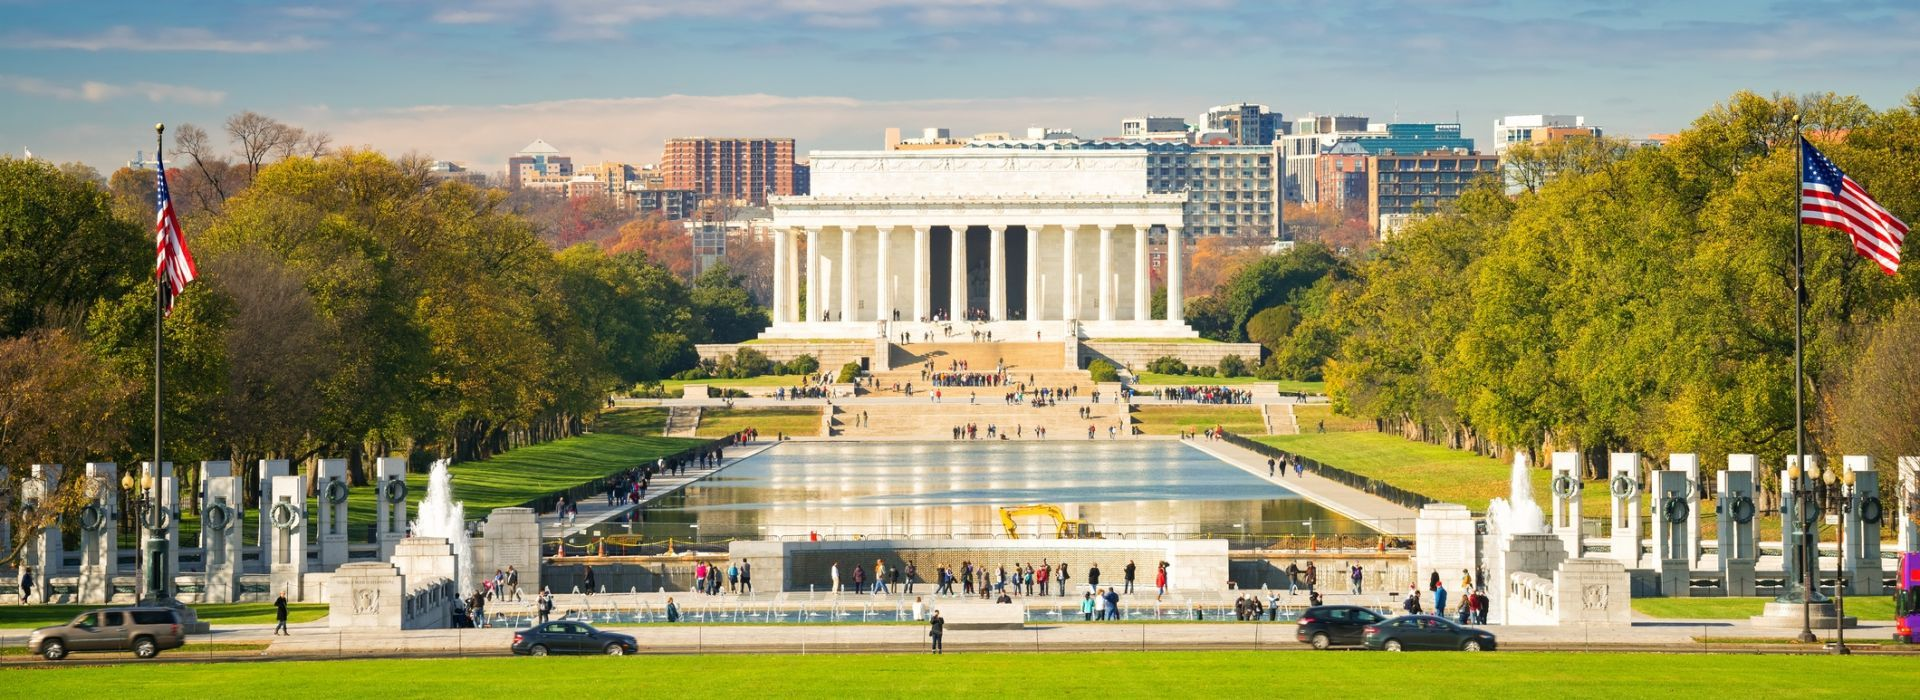 Sightseeing, attractions, culture and history Tours in Denver